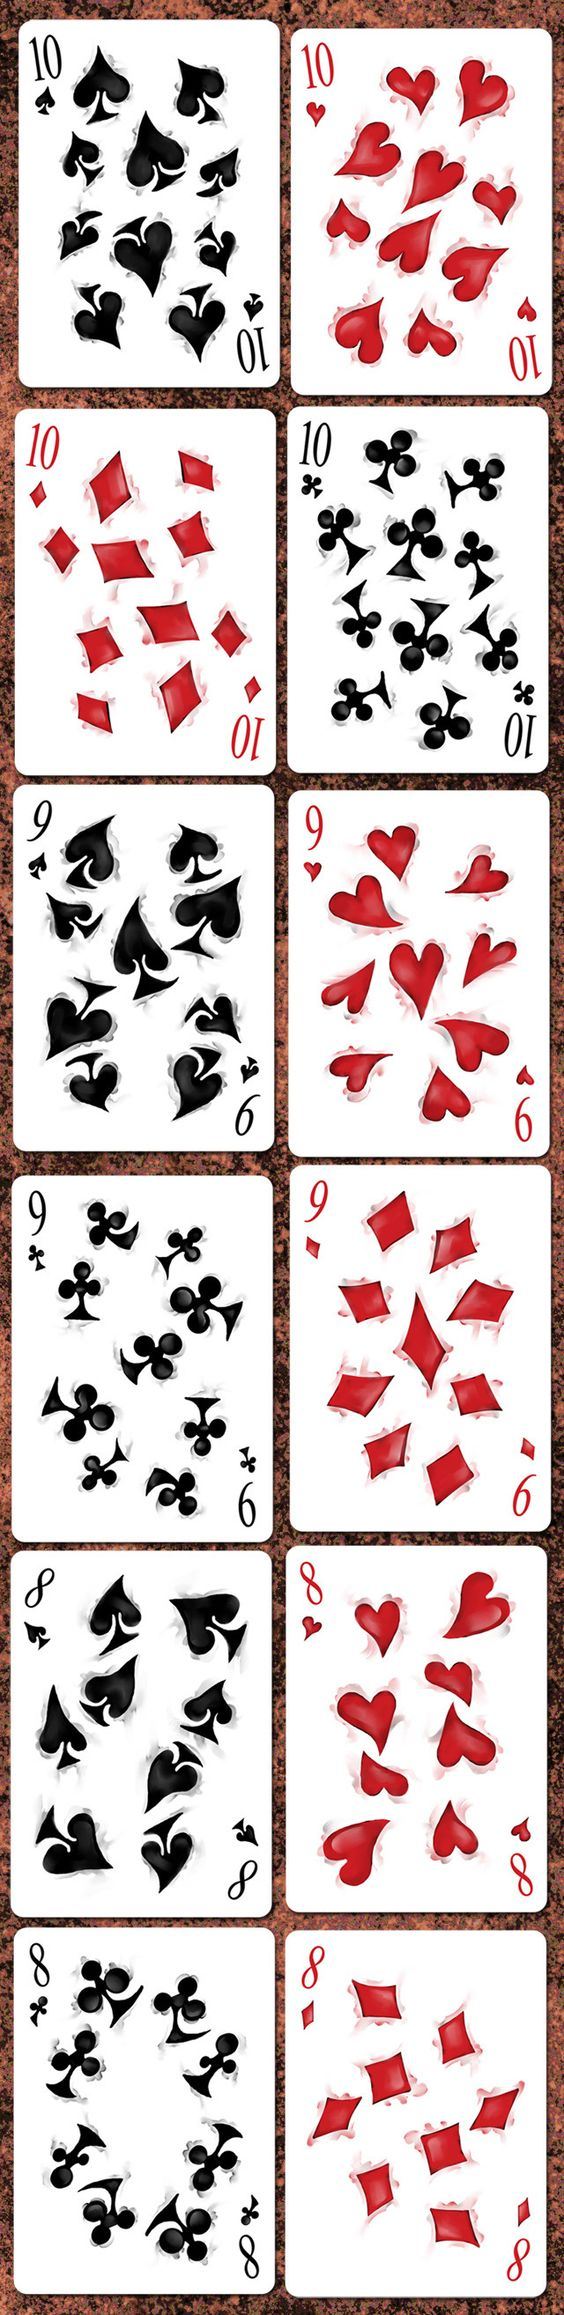 Bicycle Disruption Playing Cards by Collectable Playing Cards — Kickstarter